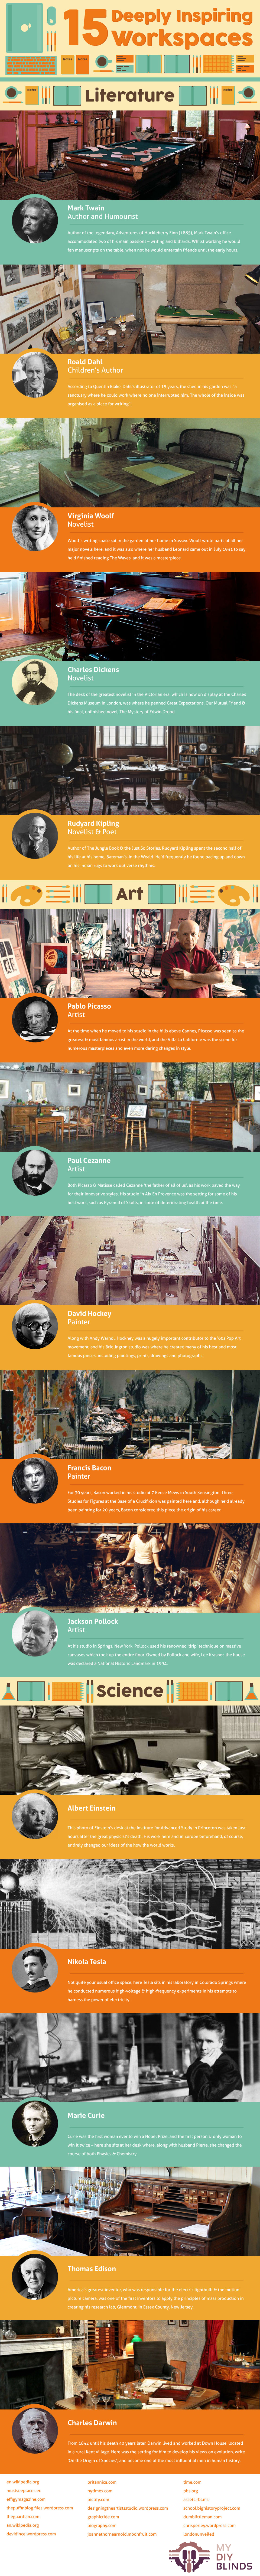 inspiring workplaces infographic